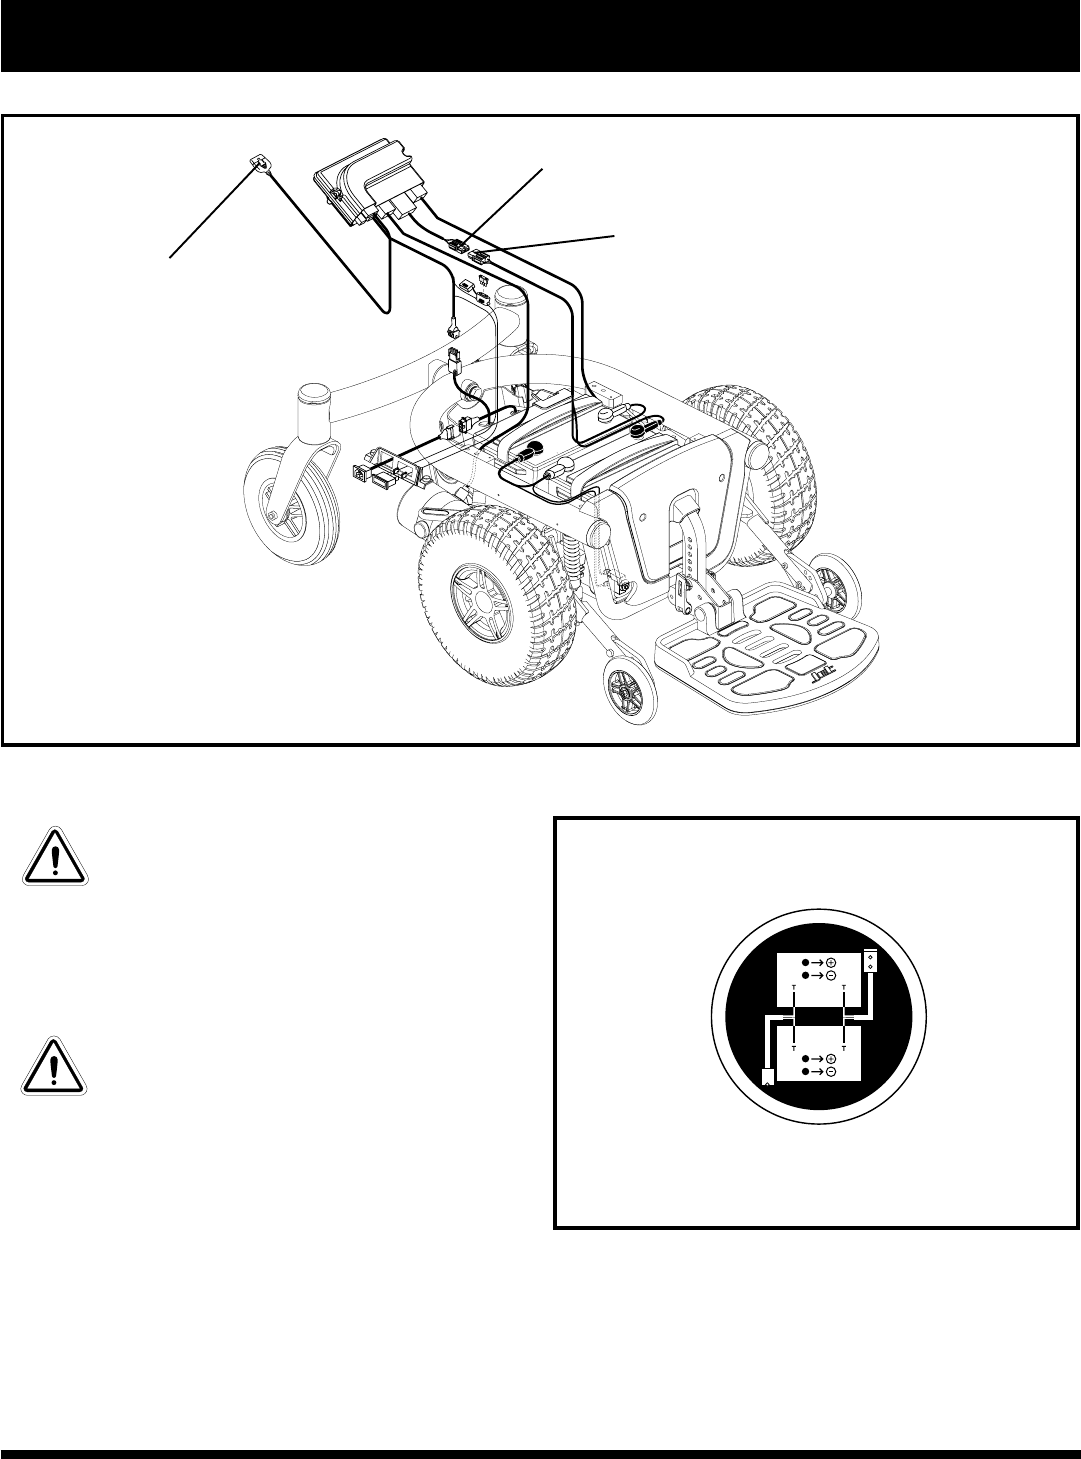 6dc69666 e3c5 4f7f 95c8 2ac0b576ce44 bg26 page 38 of pride mobility mobility aid jet 3 user guide pride gogo ultra wiring diagram at mifinder.co